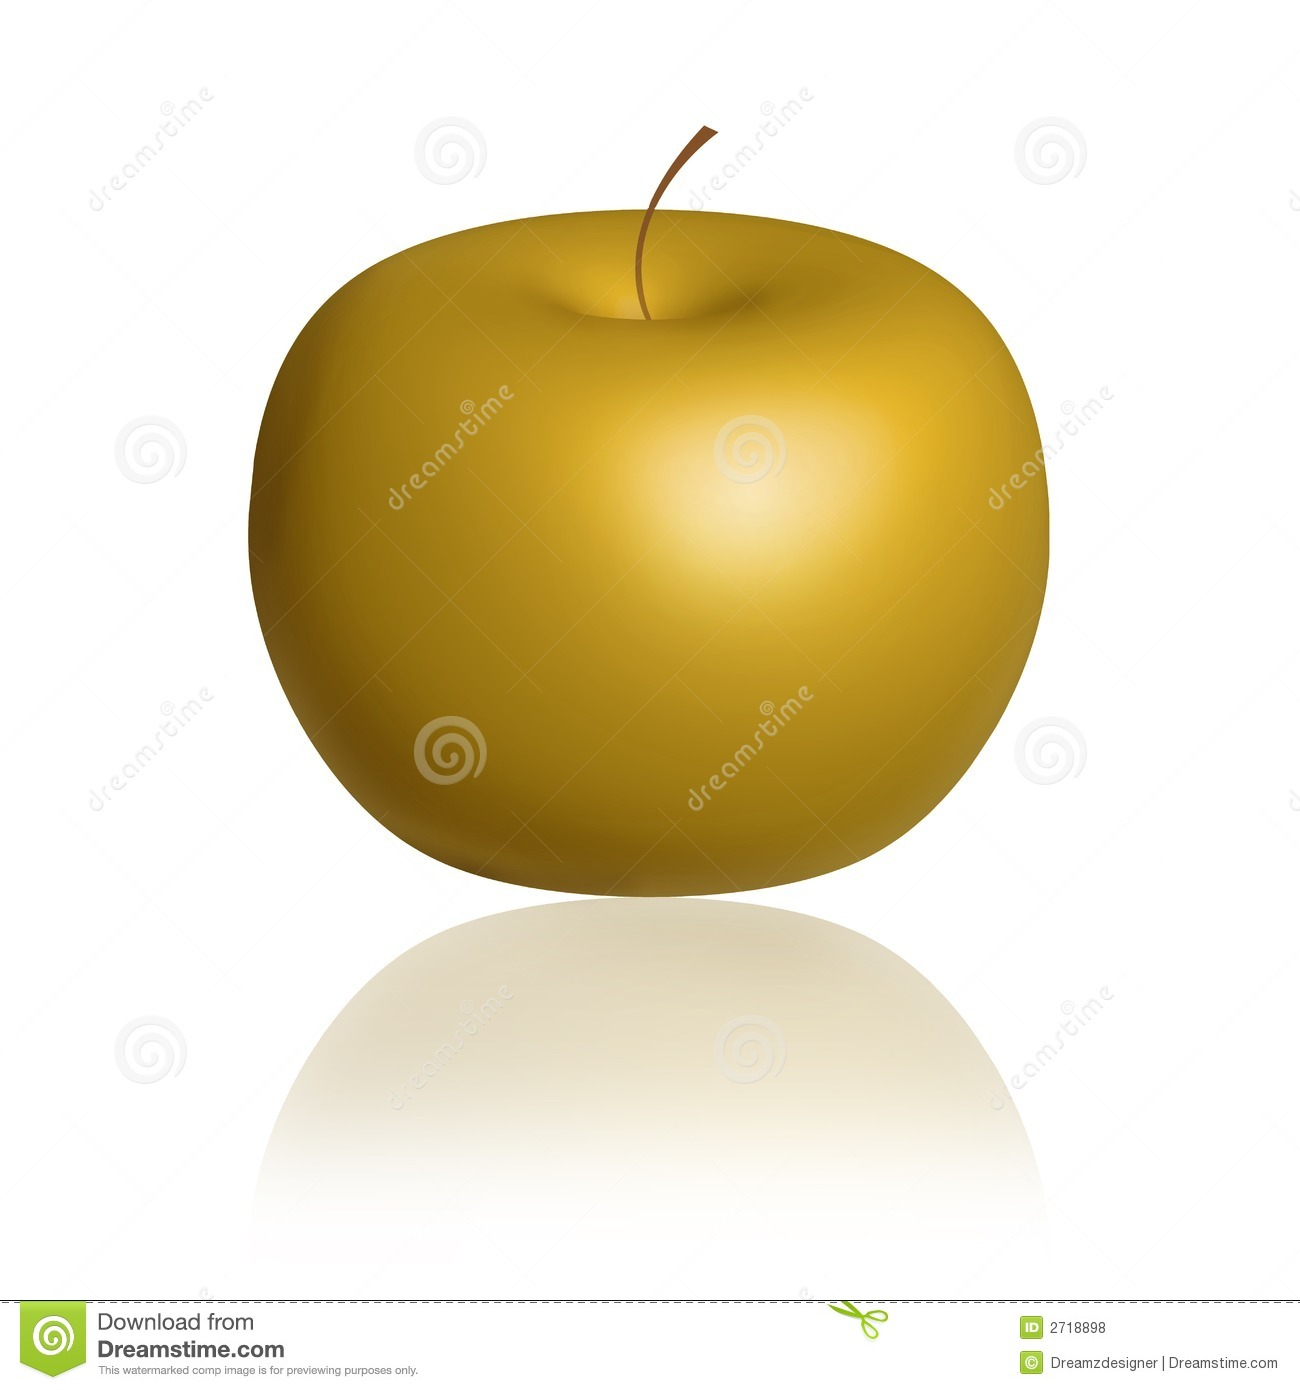 Golden Apple - Gold Apple Royalty Free Stock Photos - Image: 2718898